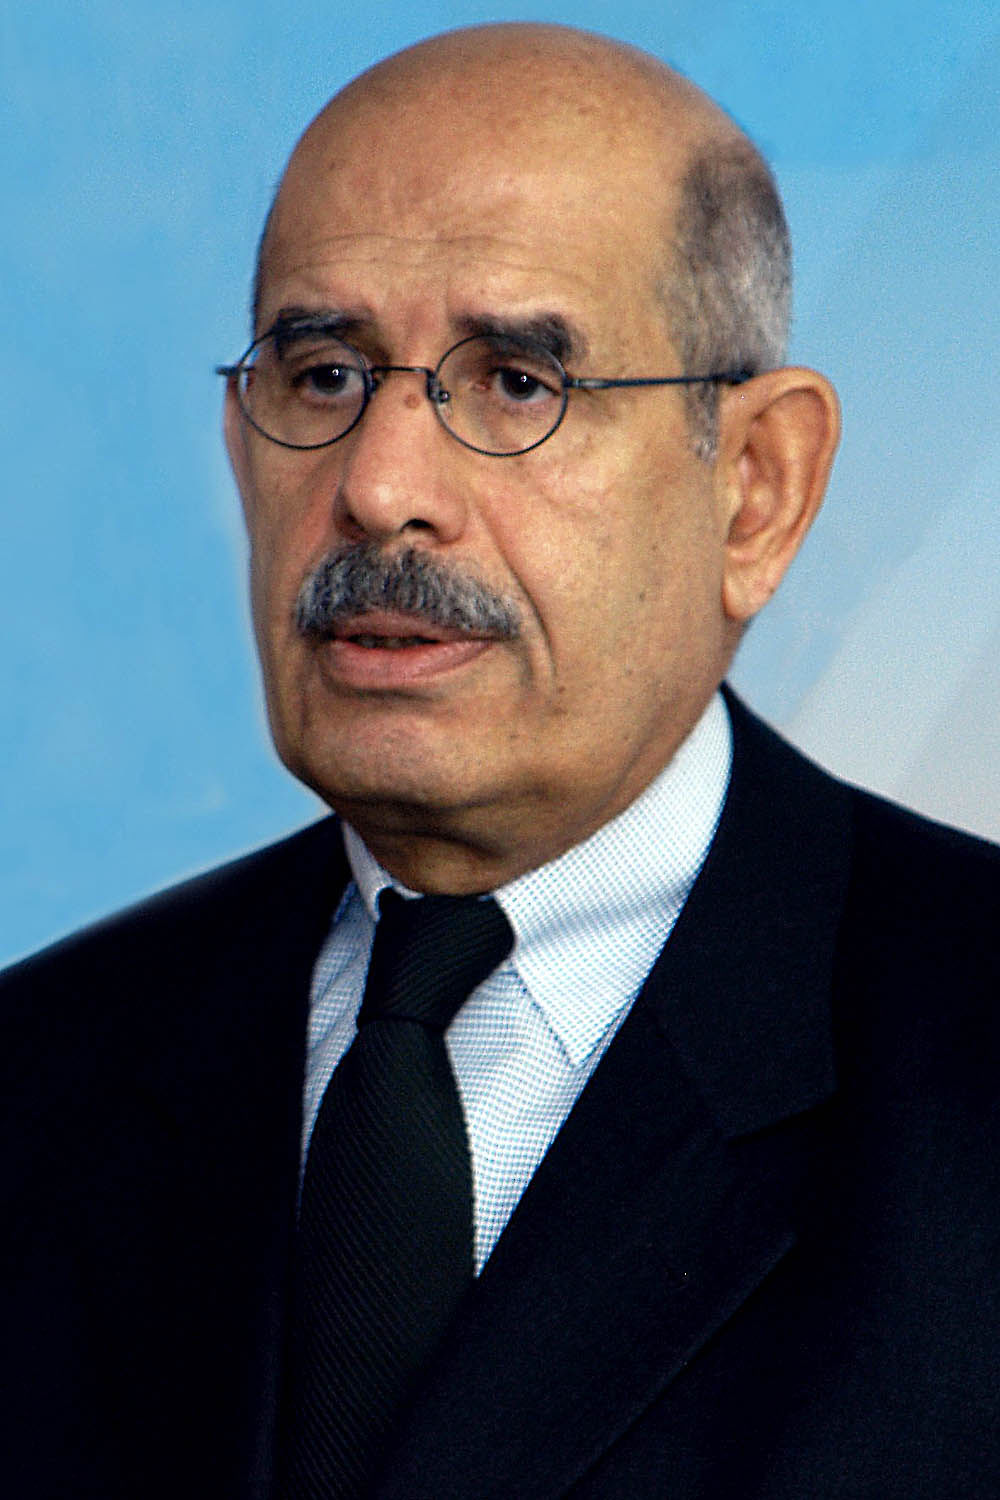 Photo of Mohamed ElBaradei: Egyptian law scholar and diplomat, former Director General of the International Atomic Energy Agency, and Nobel Peace Prize recipient